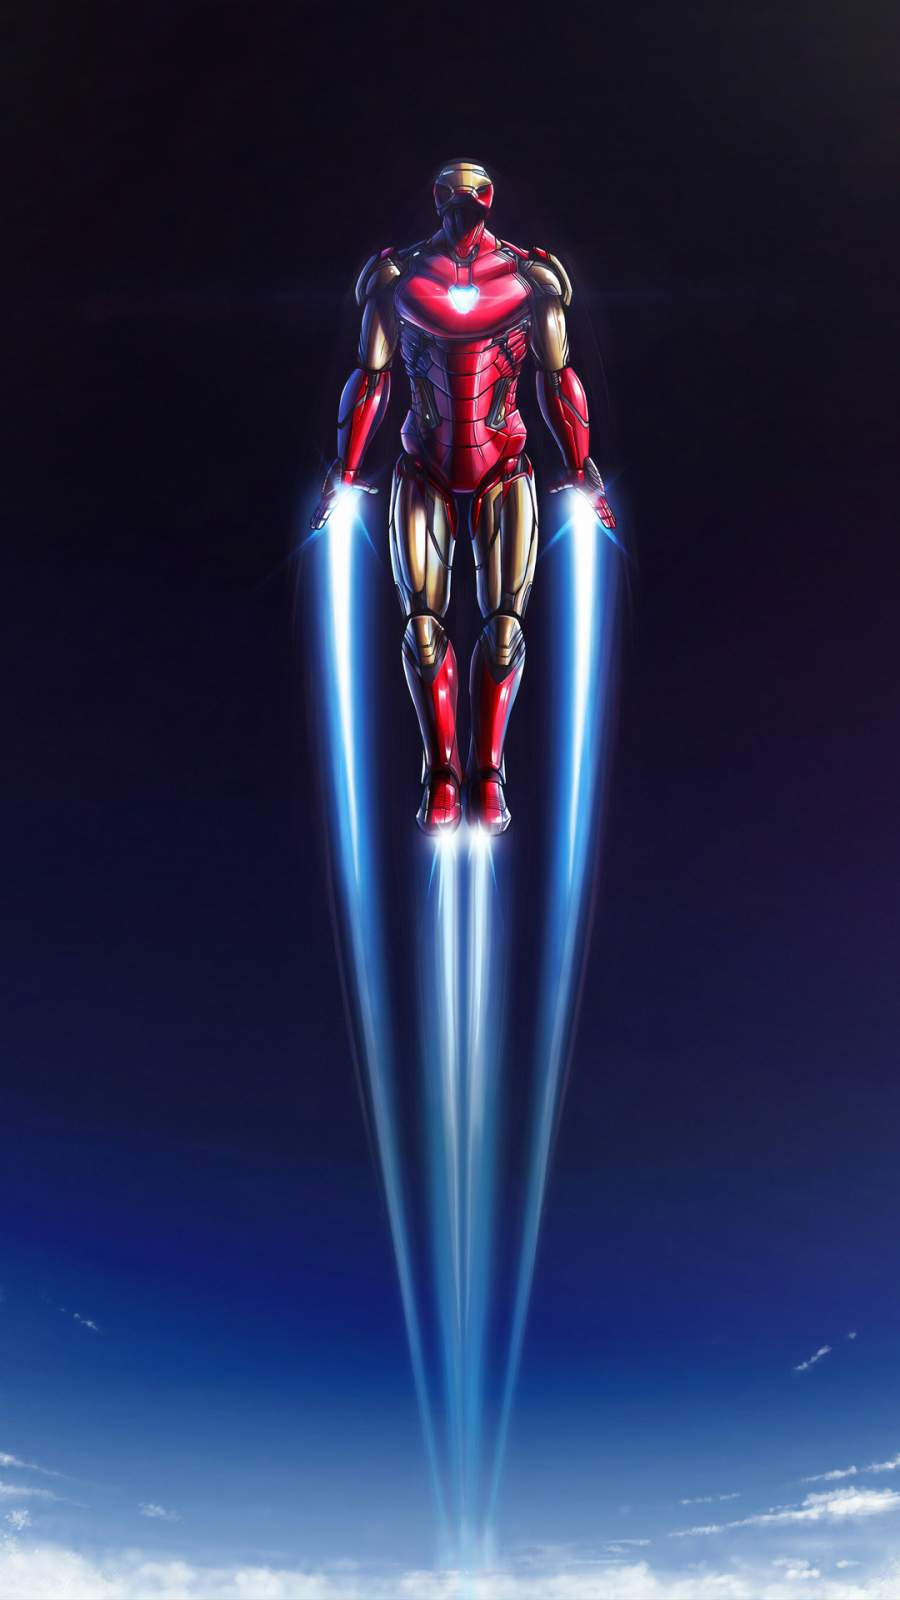 Iron Man Flying 4K iPhone Wallpaper